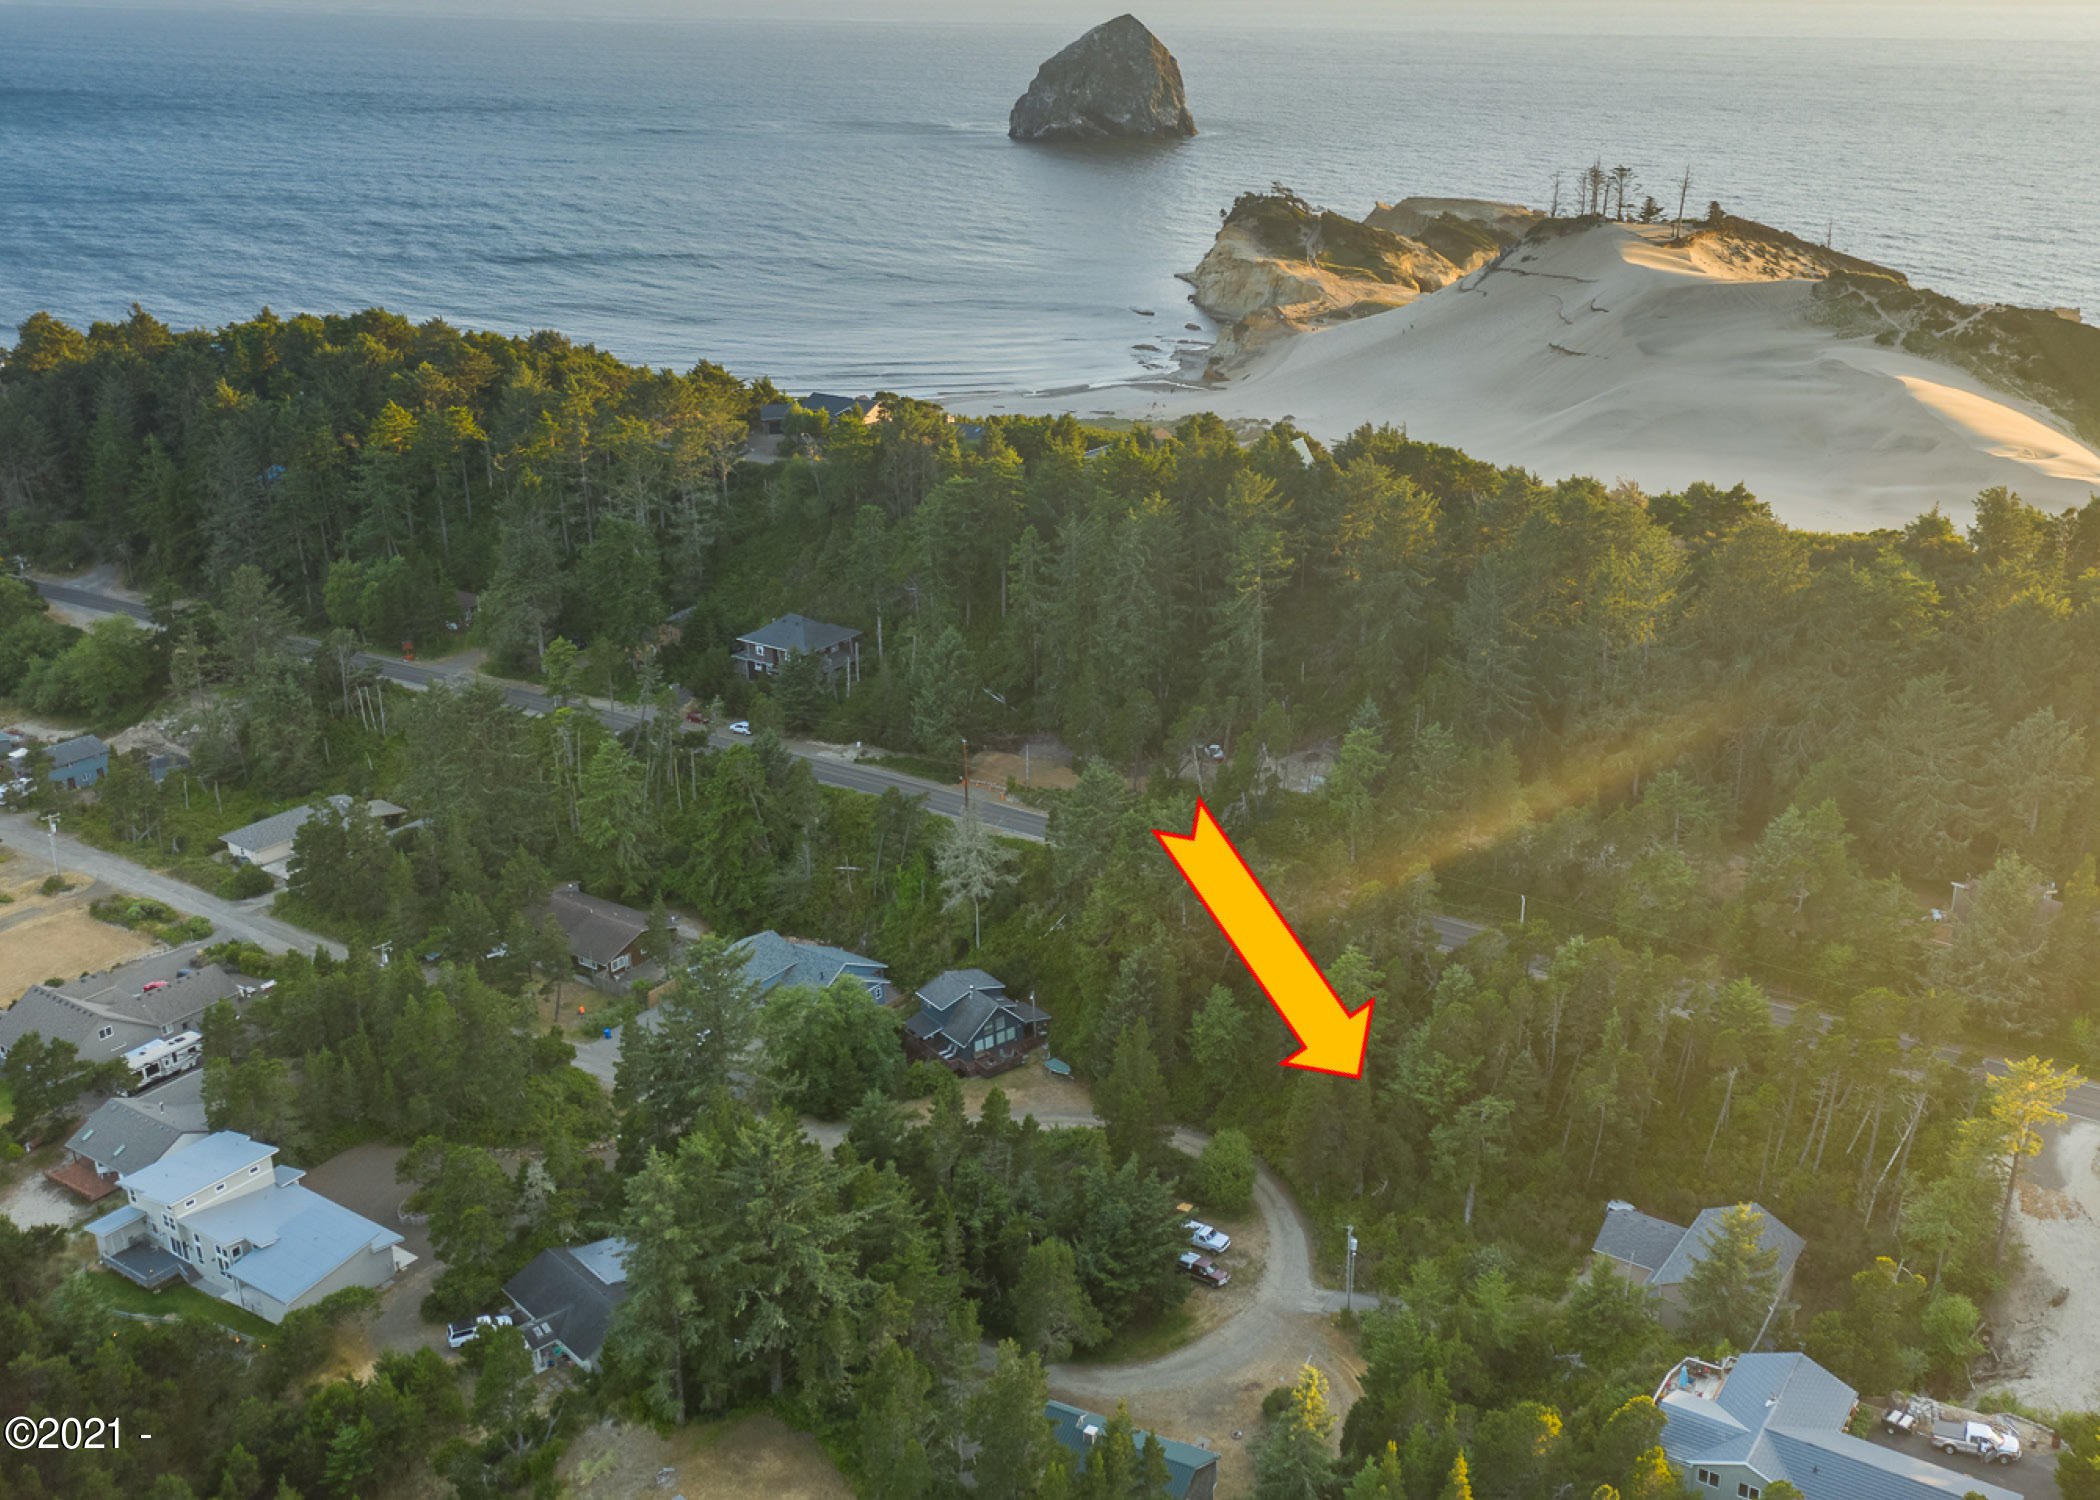 LOT 16 Circle Drive, Pacific City, OR 97135 - Brown Arrow